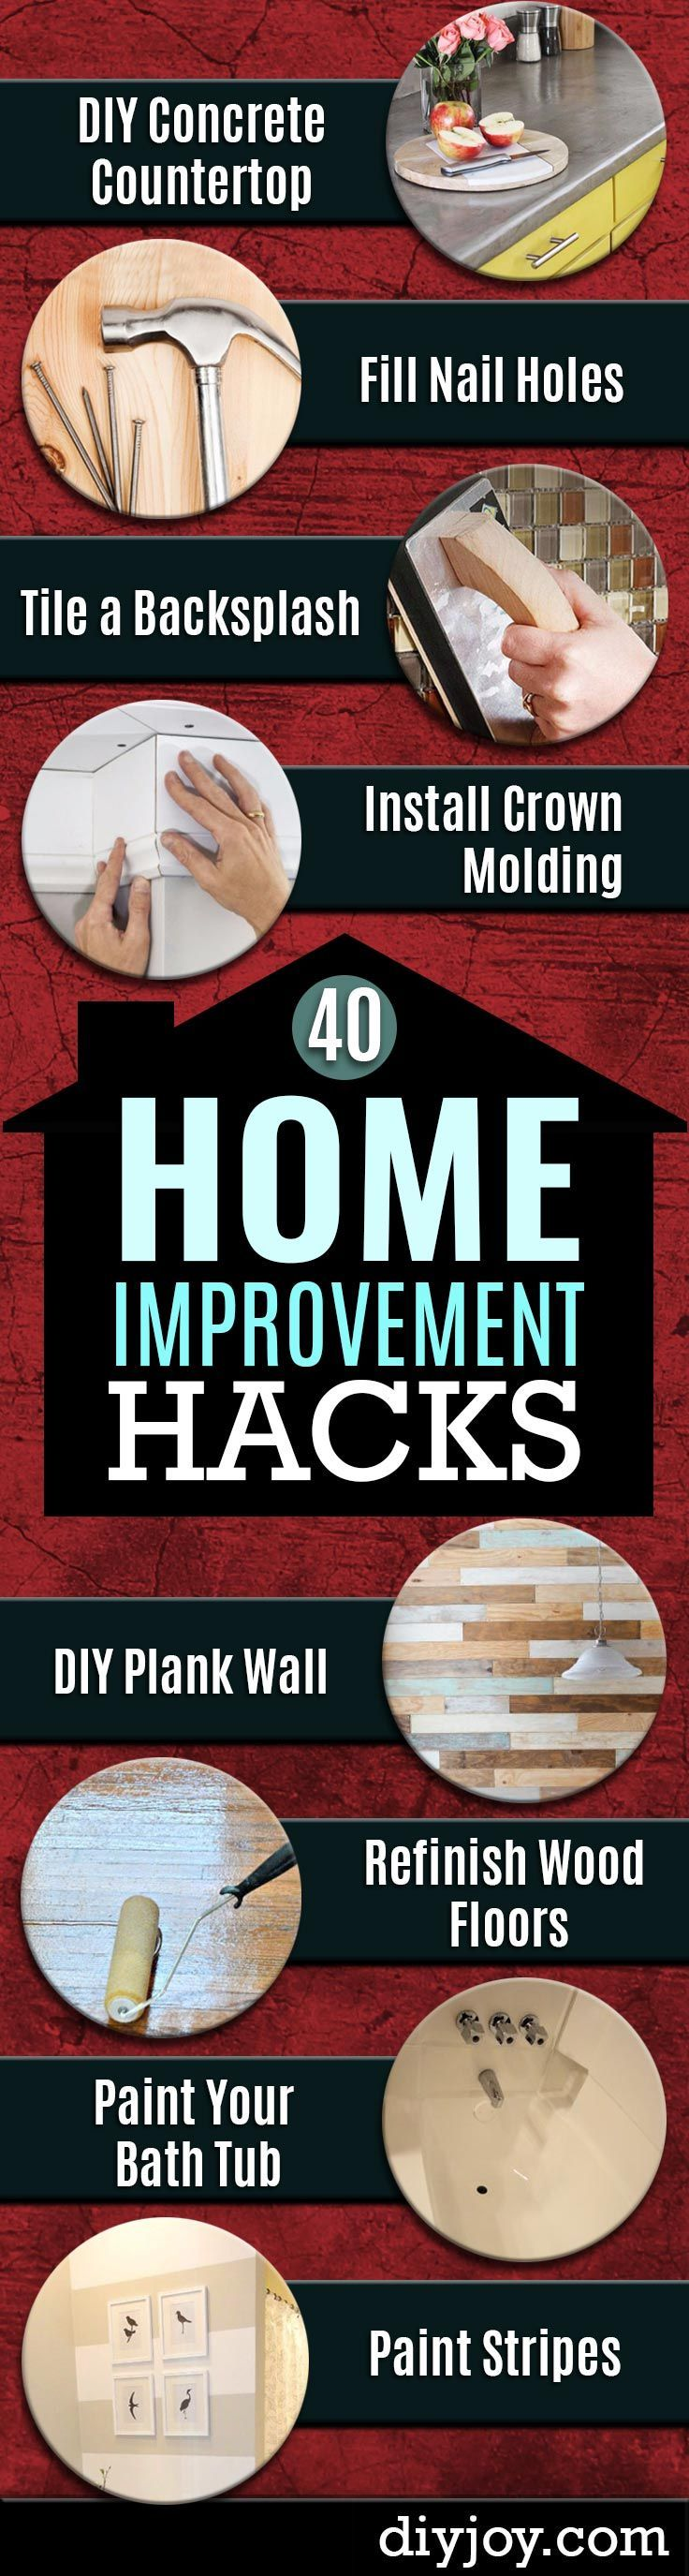 Home improvement tips to help you out home improvement ideas - 41 Clever Home Improvement Hacks